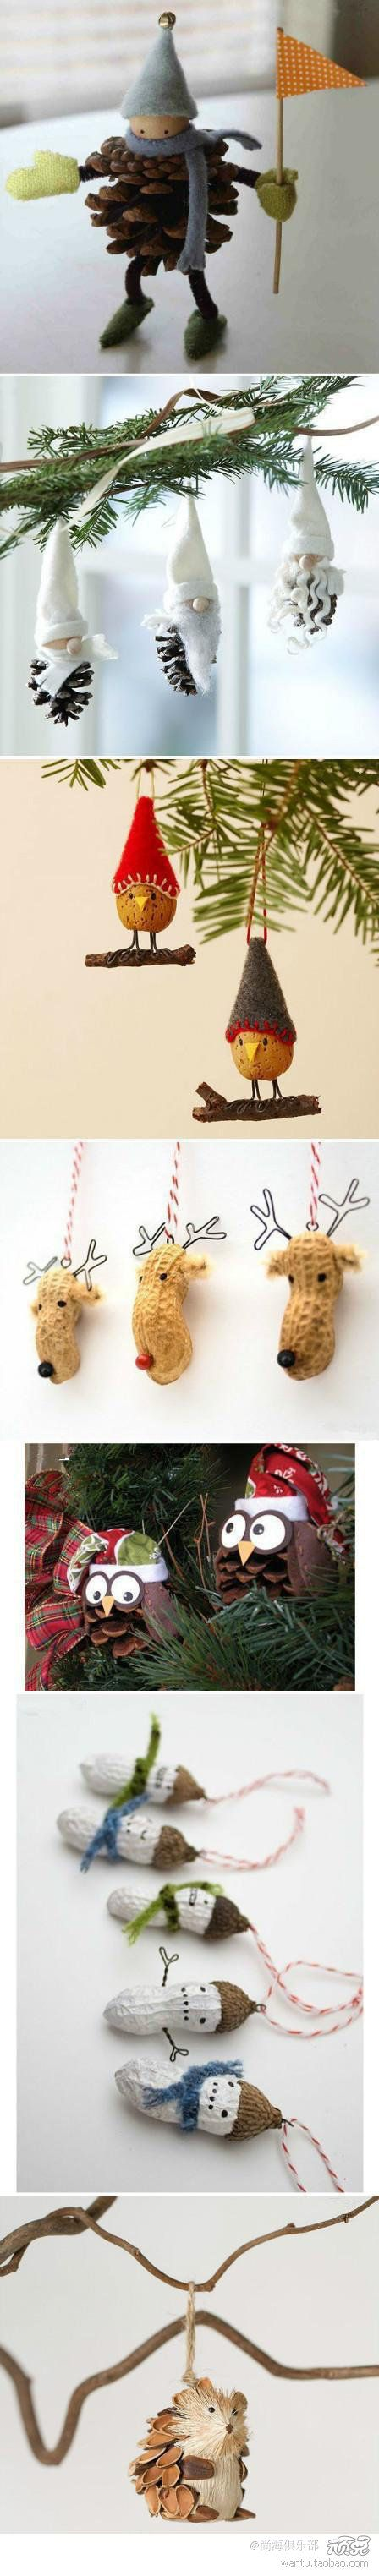 DIY Craft Inspirations - seriously cute ornaments crafted from pinecones, peanuts...